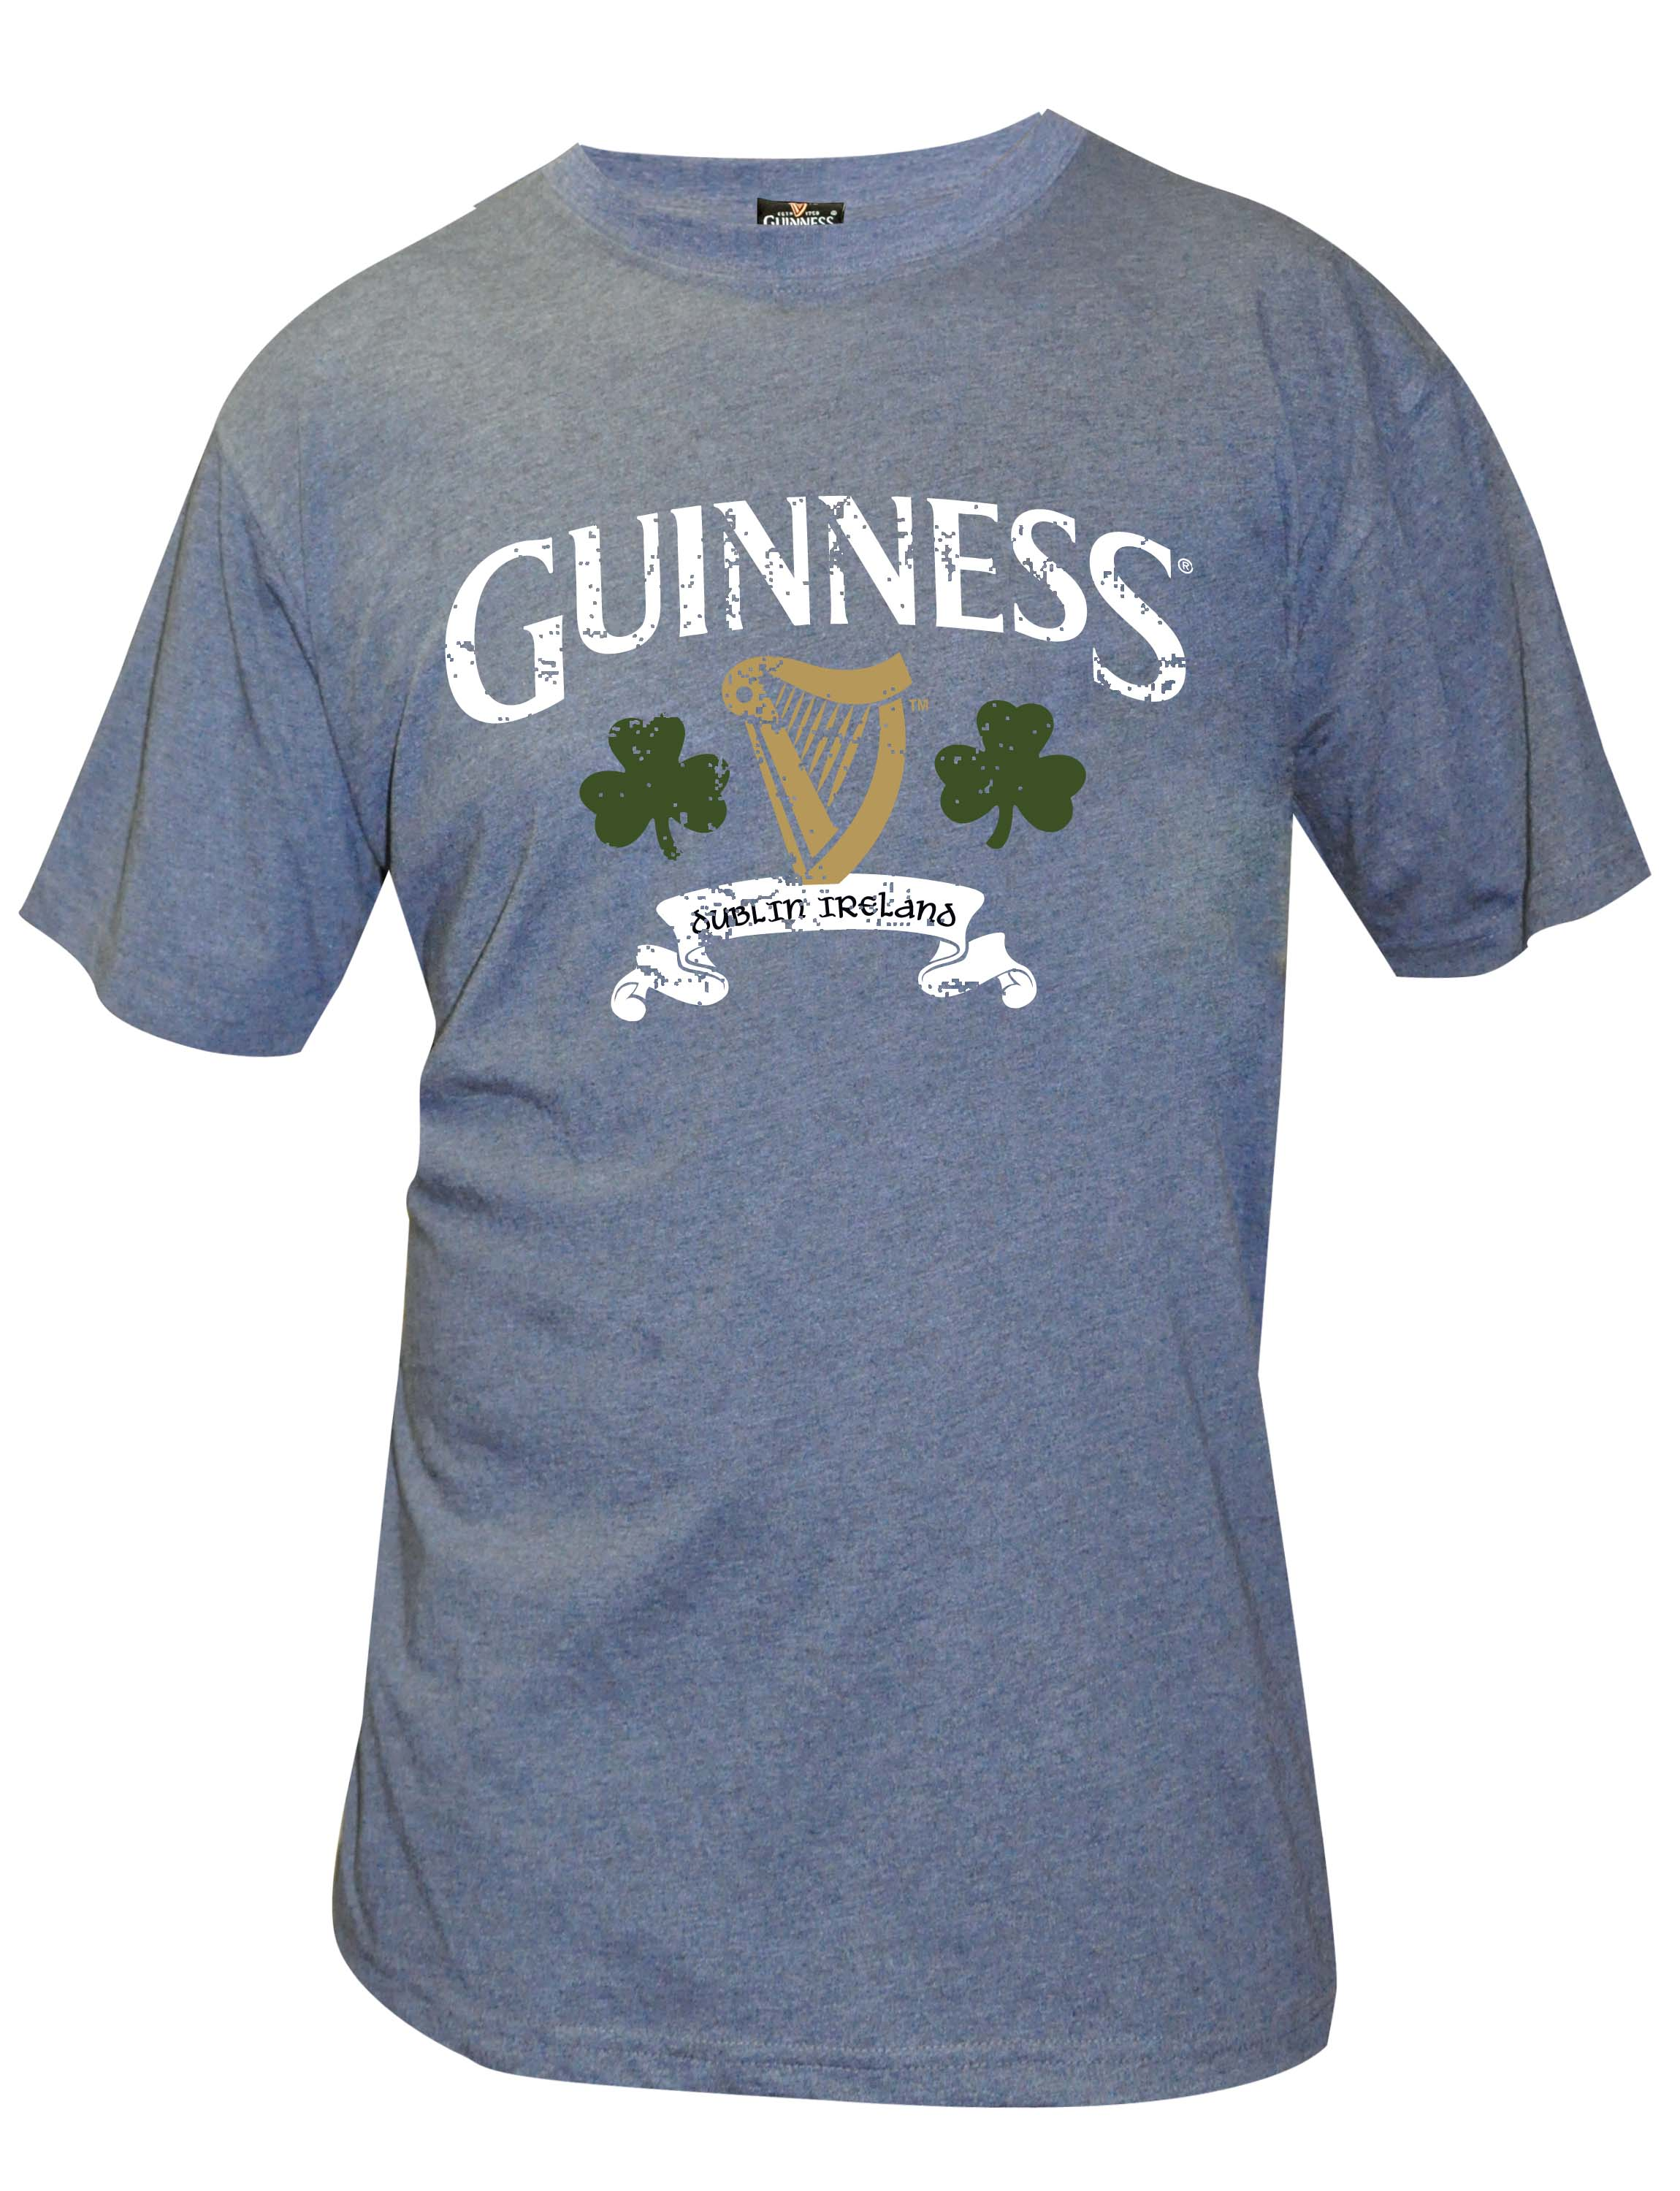 Guinness® Navy Distressed T-Shirt